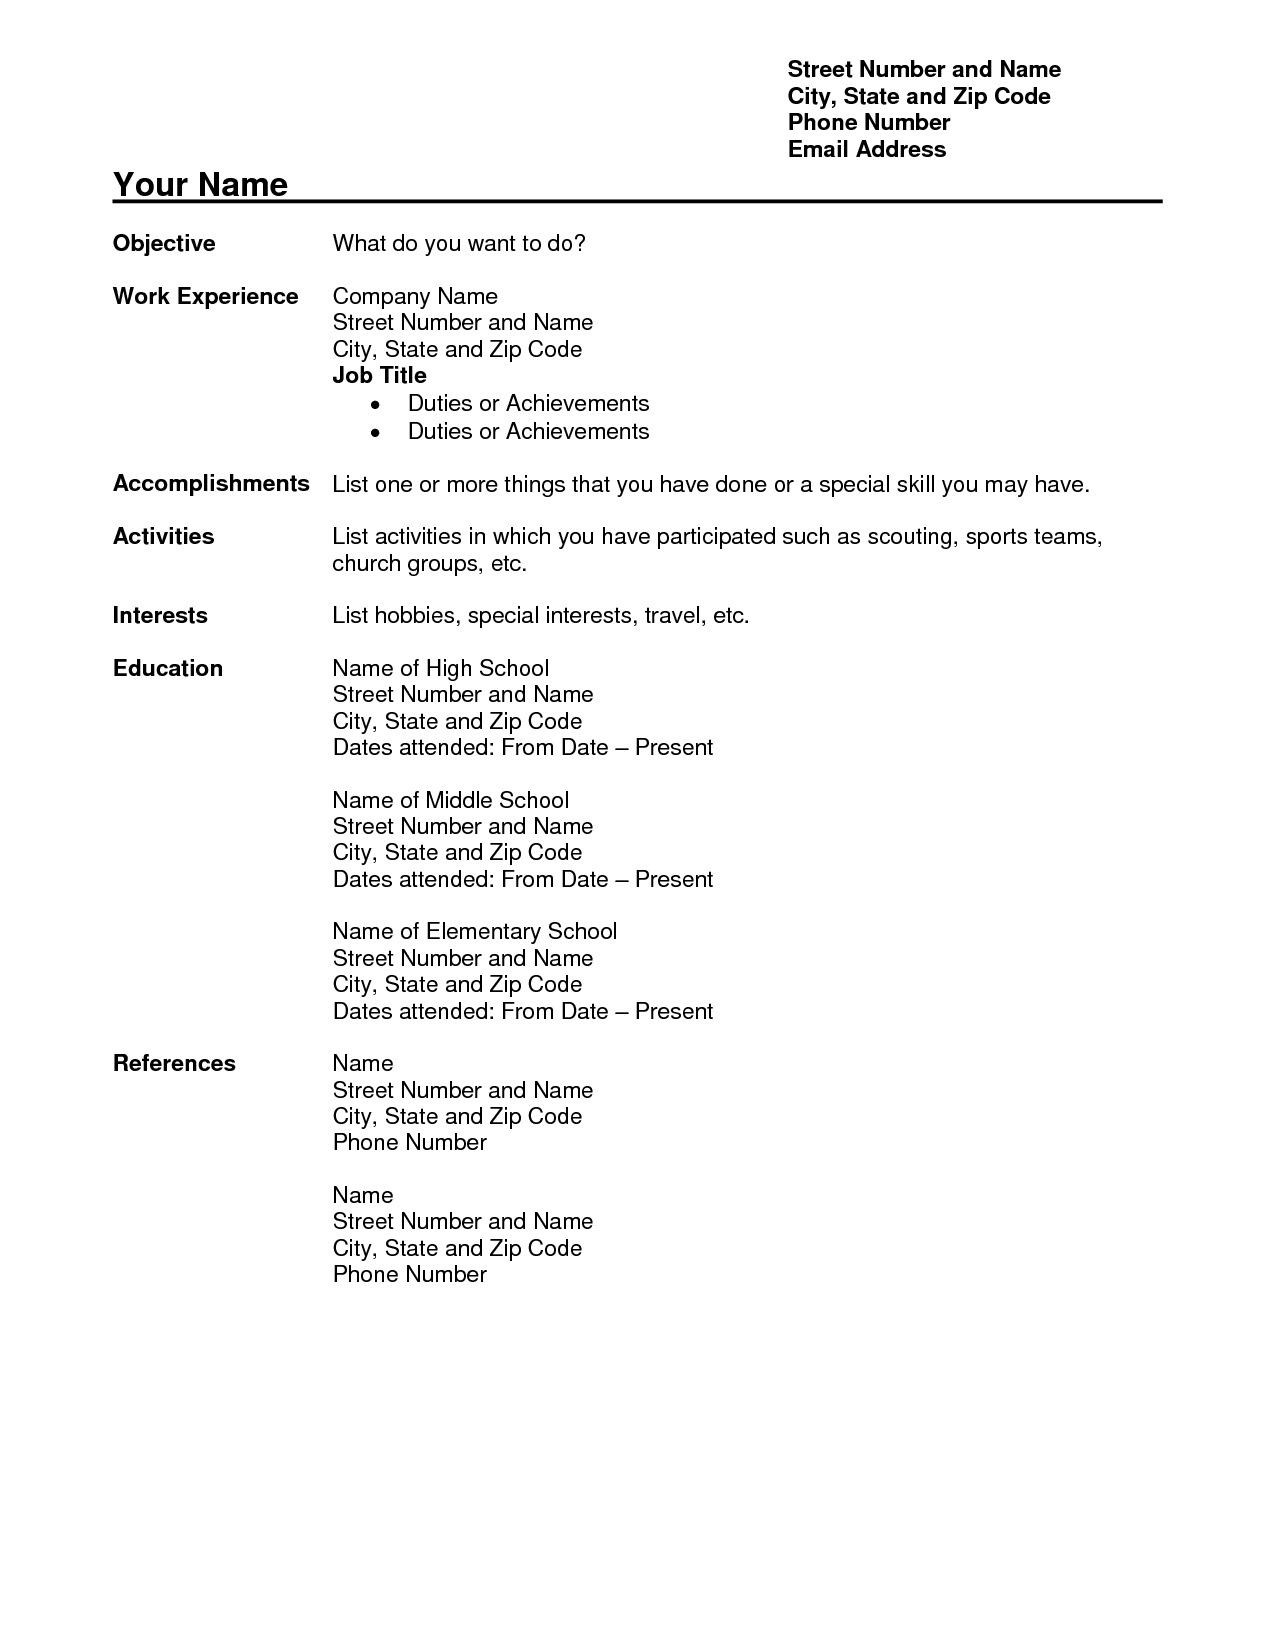 Free teacher resume templates download free teacher resume free teacher resume templates download free teacher resume templates download free teacher resume templates microsoft yelopaper